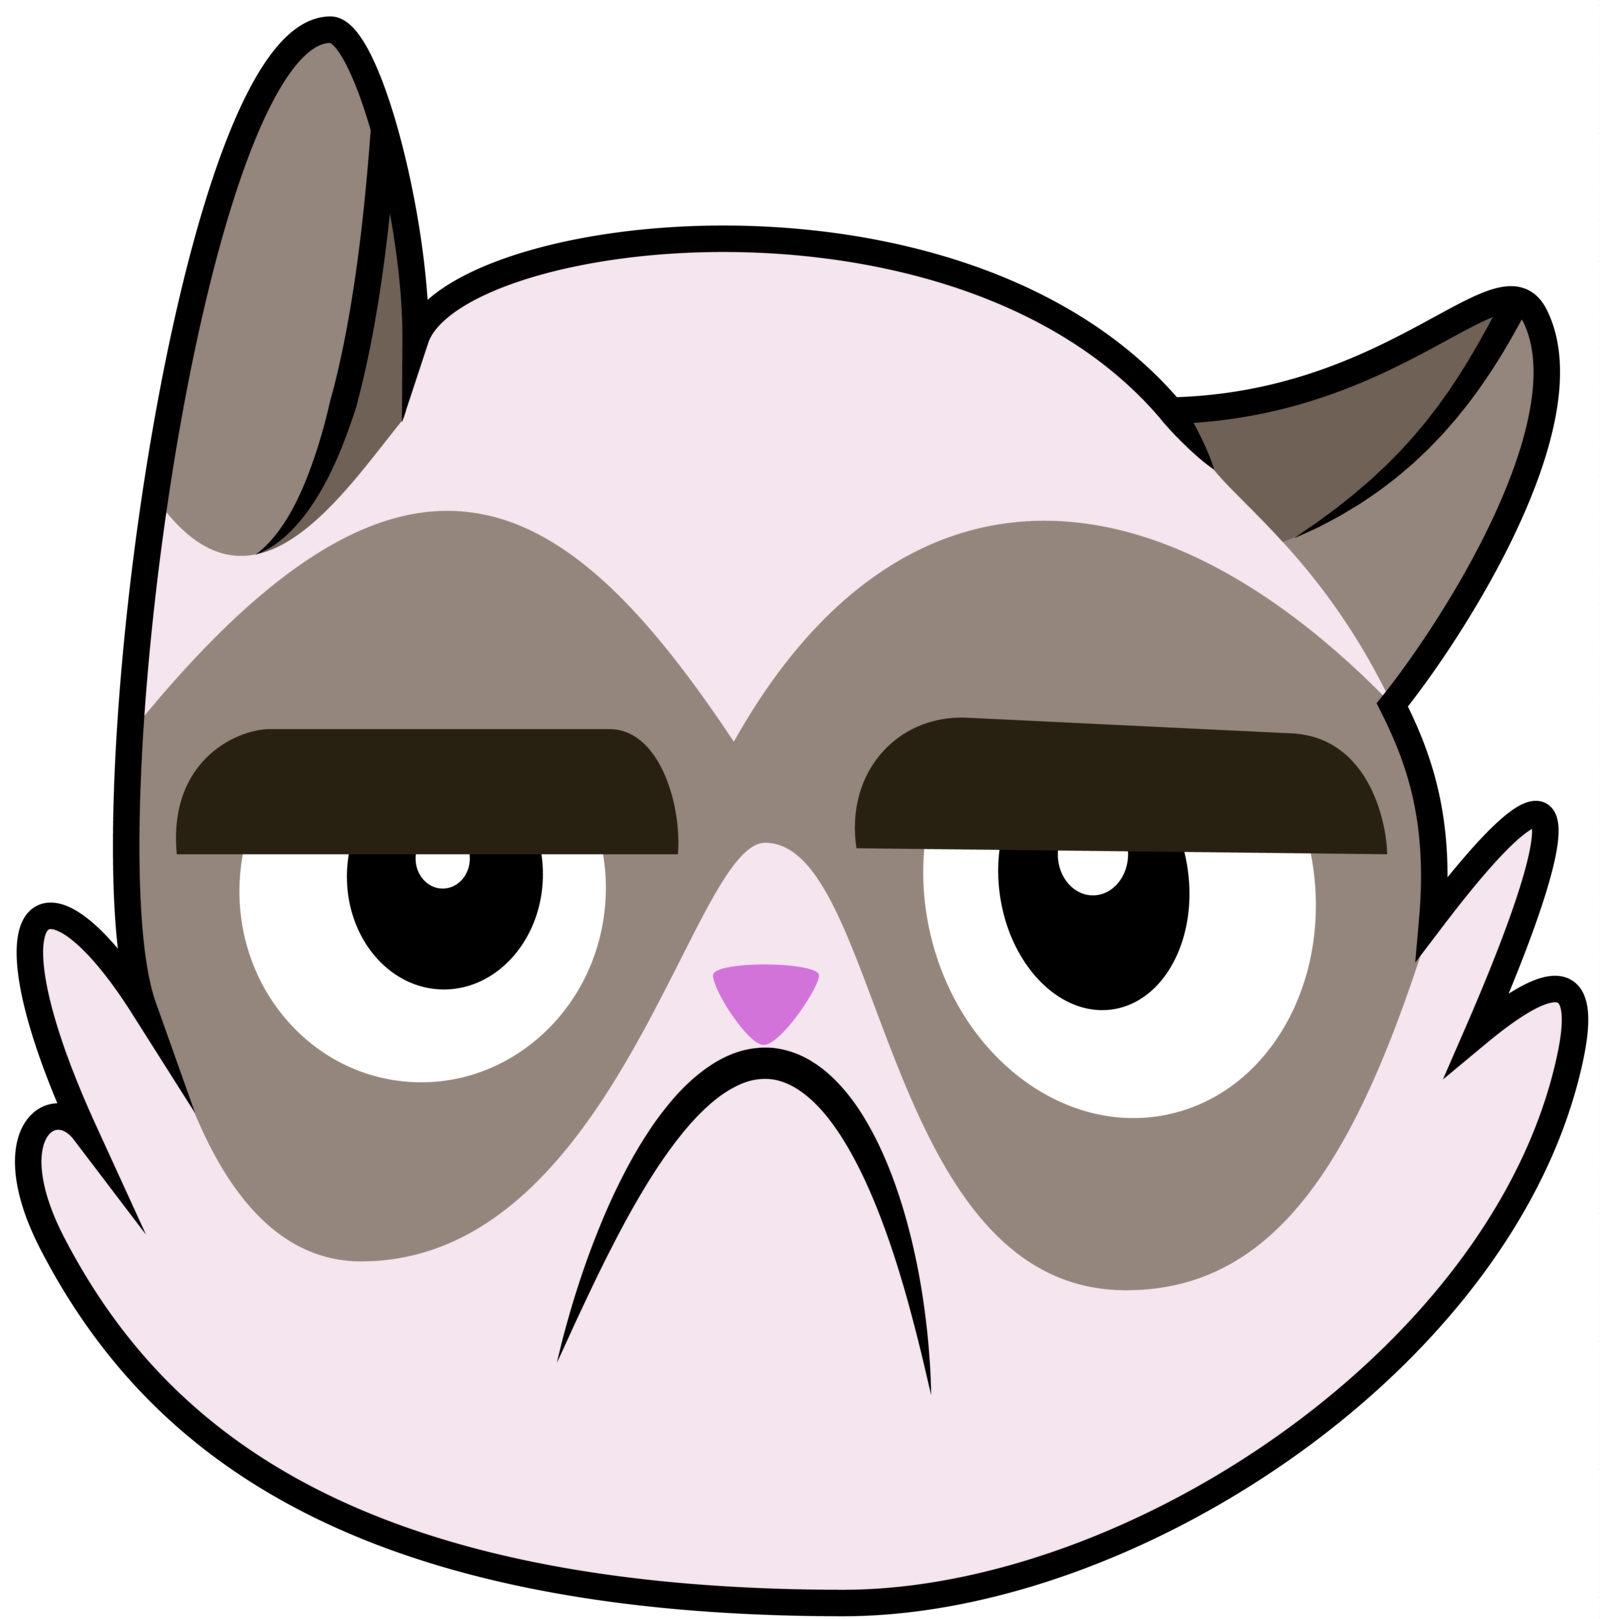 Angry cat clipart vector freeuse download 28+ Collection of Grumpy Cat Clipart | High quality, free cliparts ... vector freeuse download